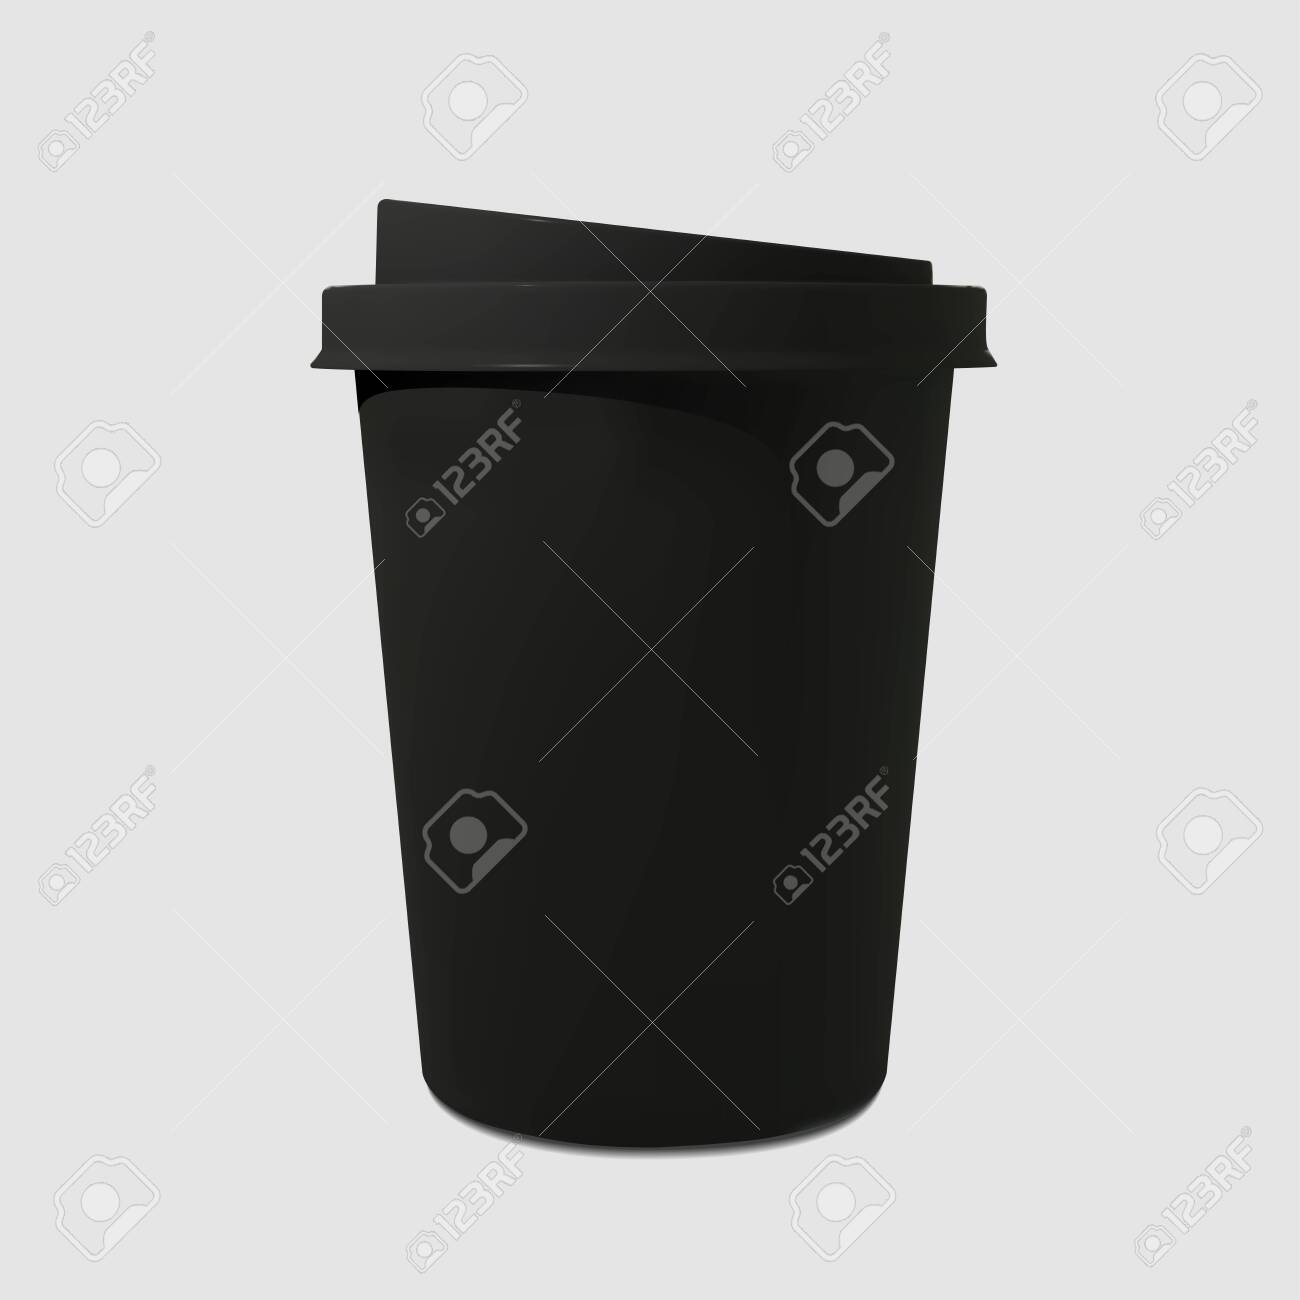 Paper realistic black coffee cup. Mockup coffee mugs. Disposable glass for drinks. Template for products, web banners and leaflets. Vector illustration - 144518990